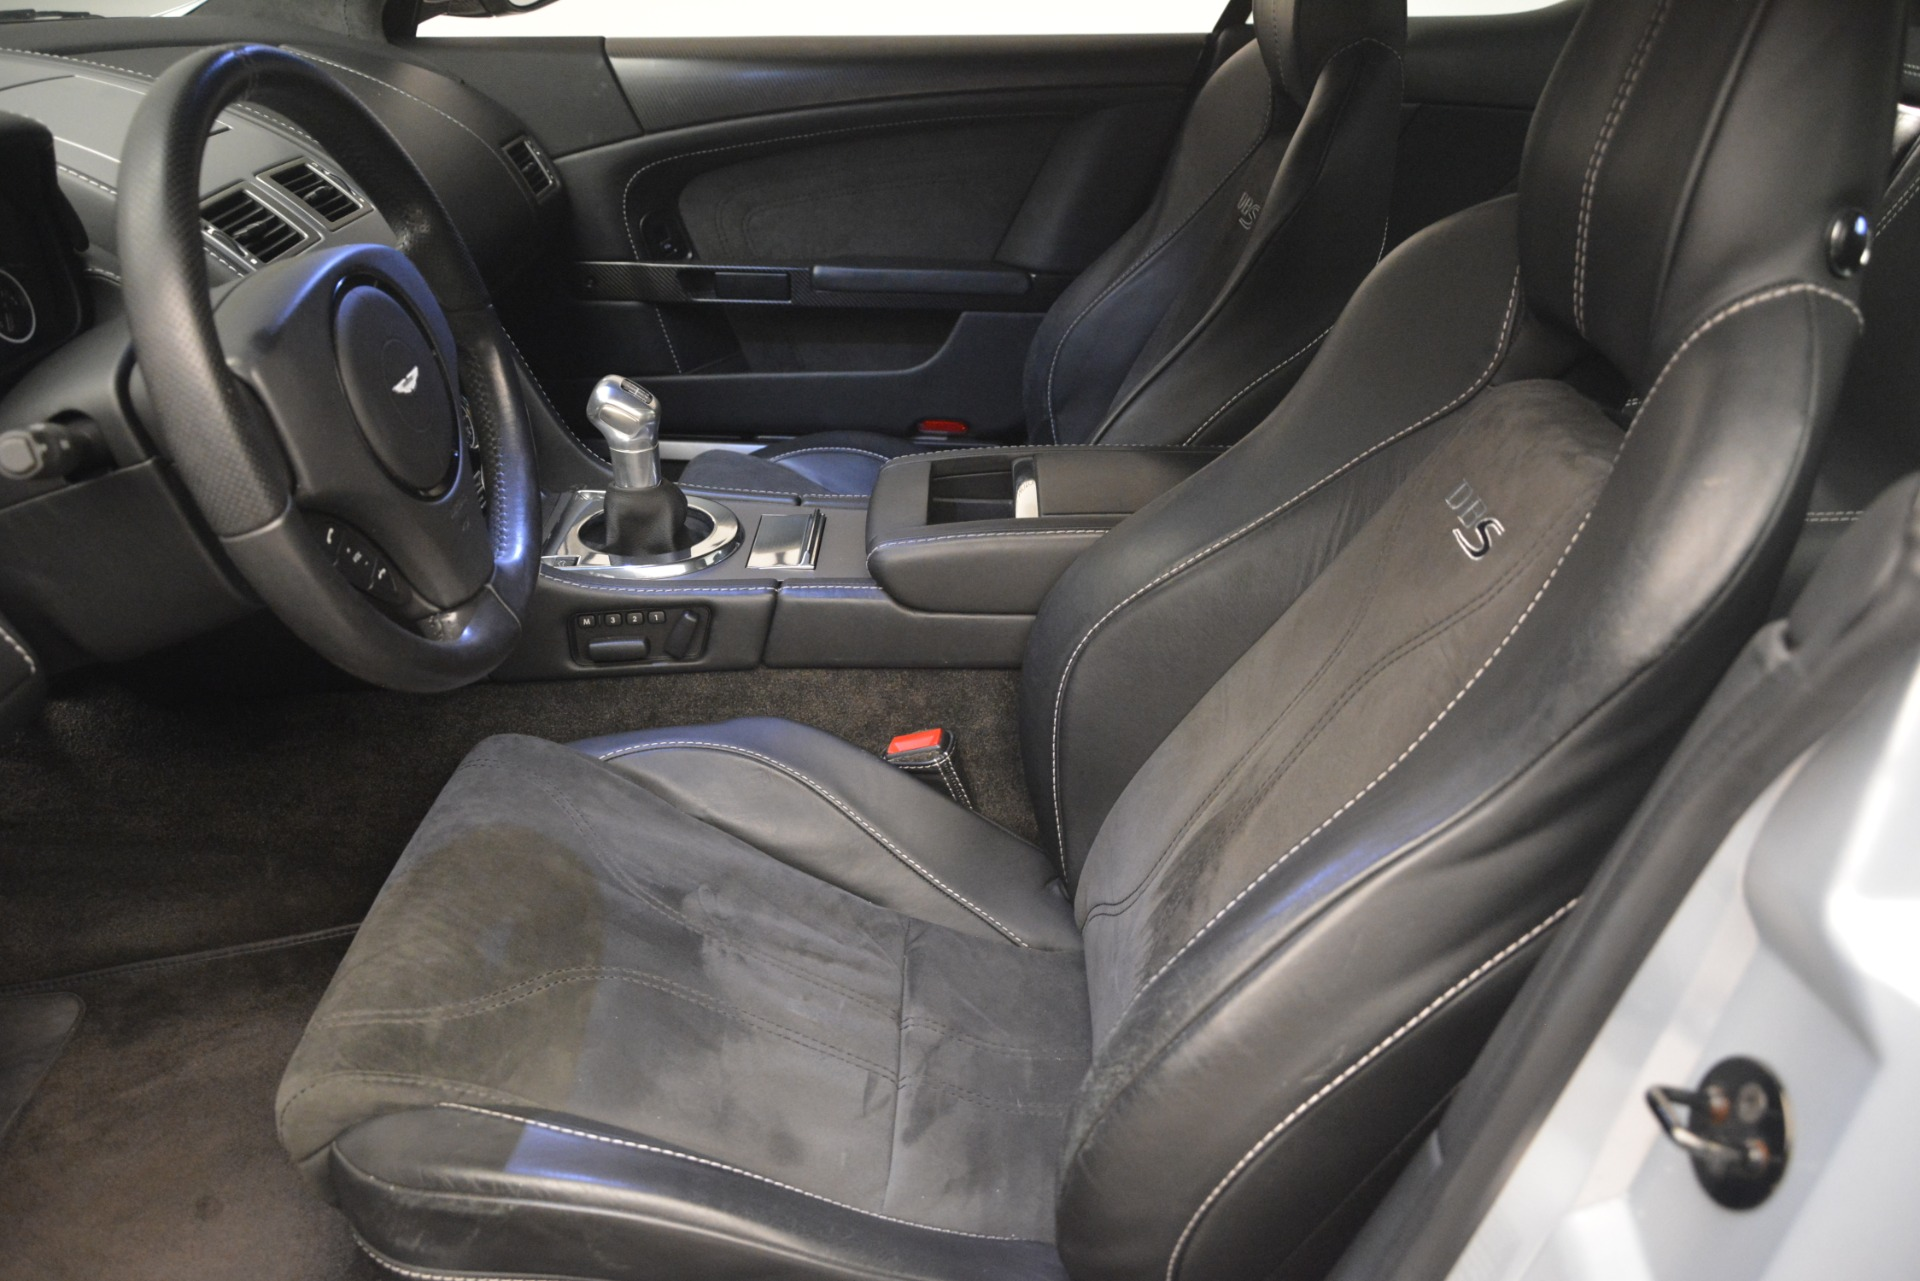 Used 2009 Aston Martin DBS Coupe For Sale In Westport, CT 3033_p19